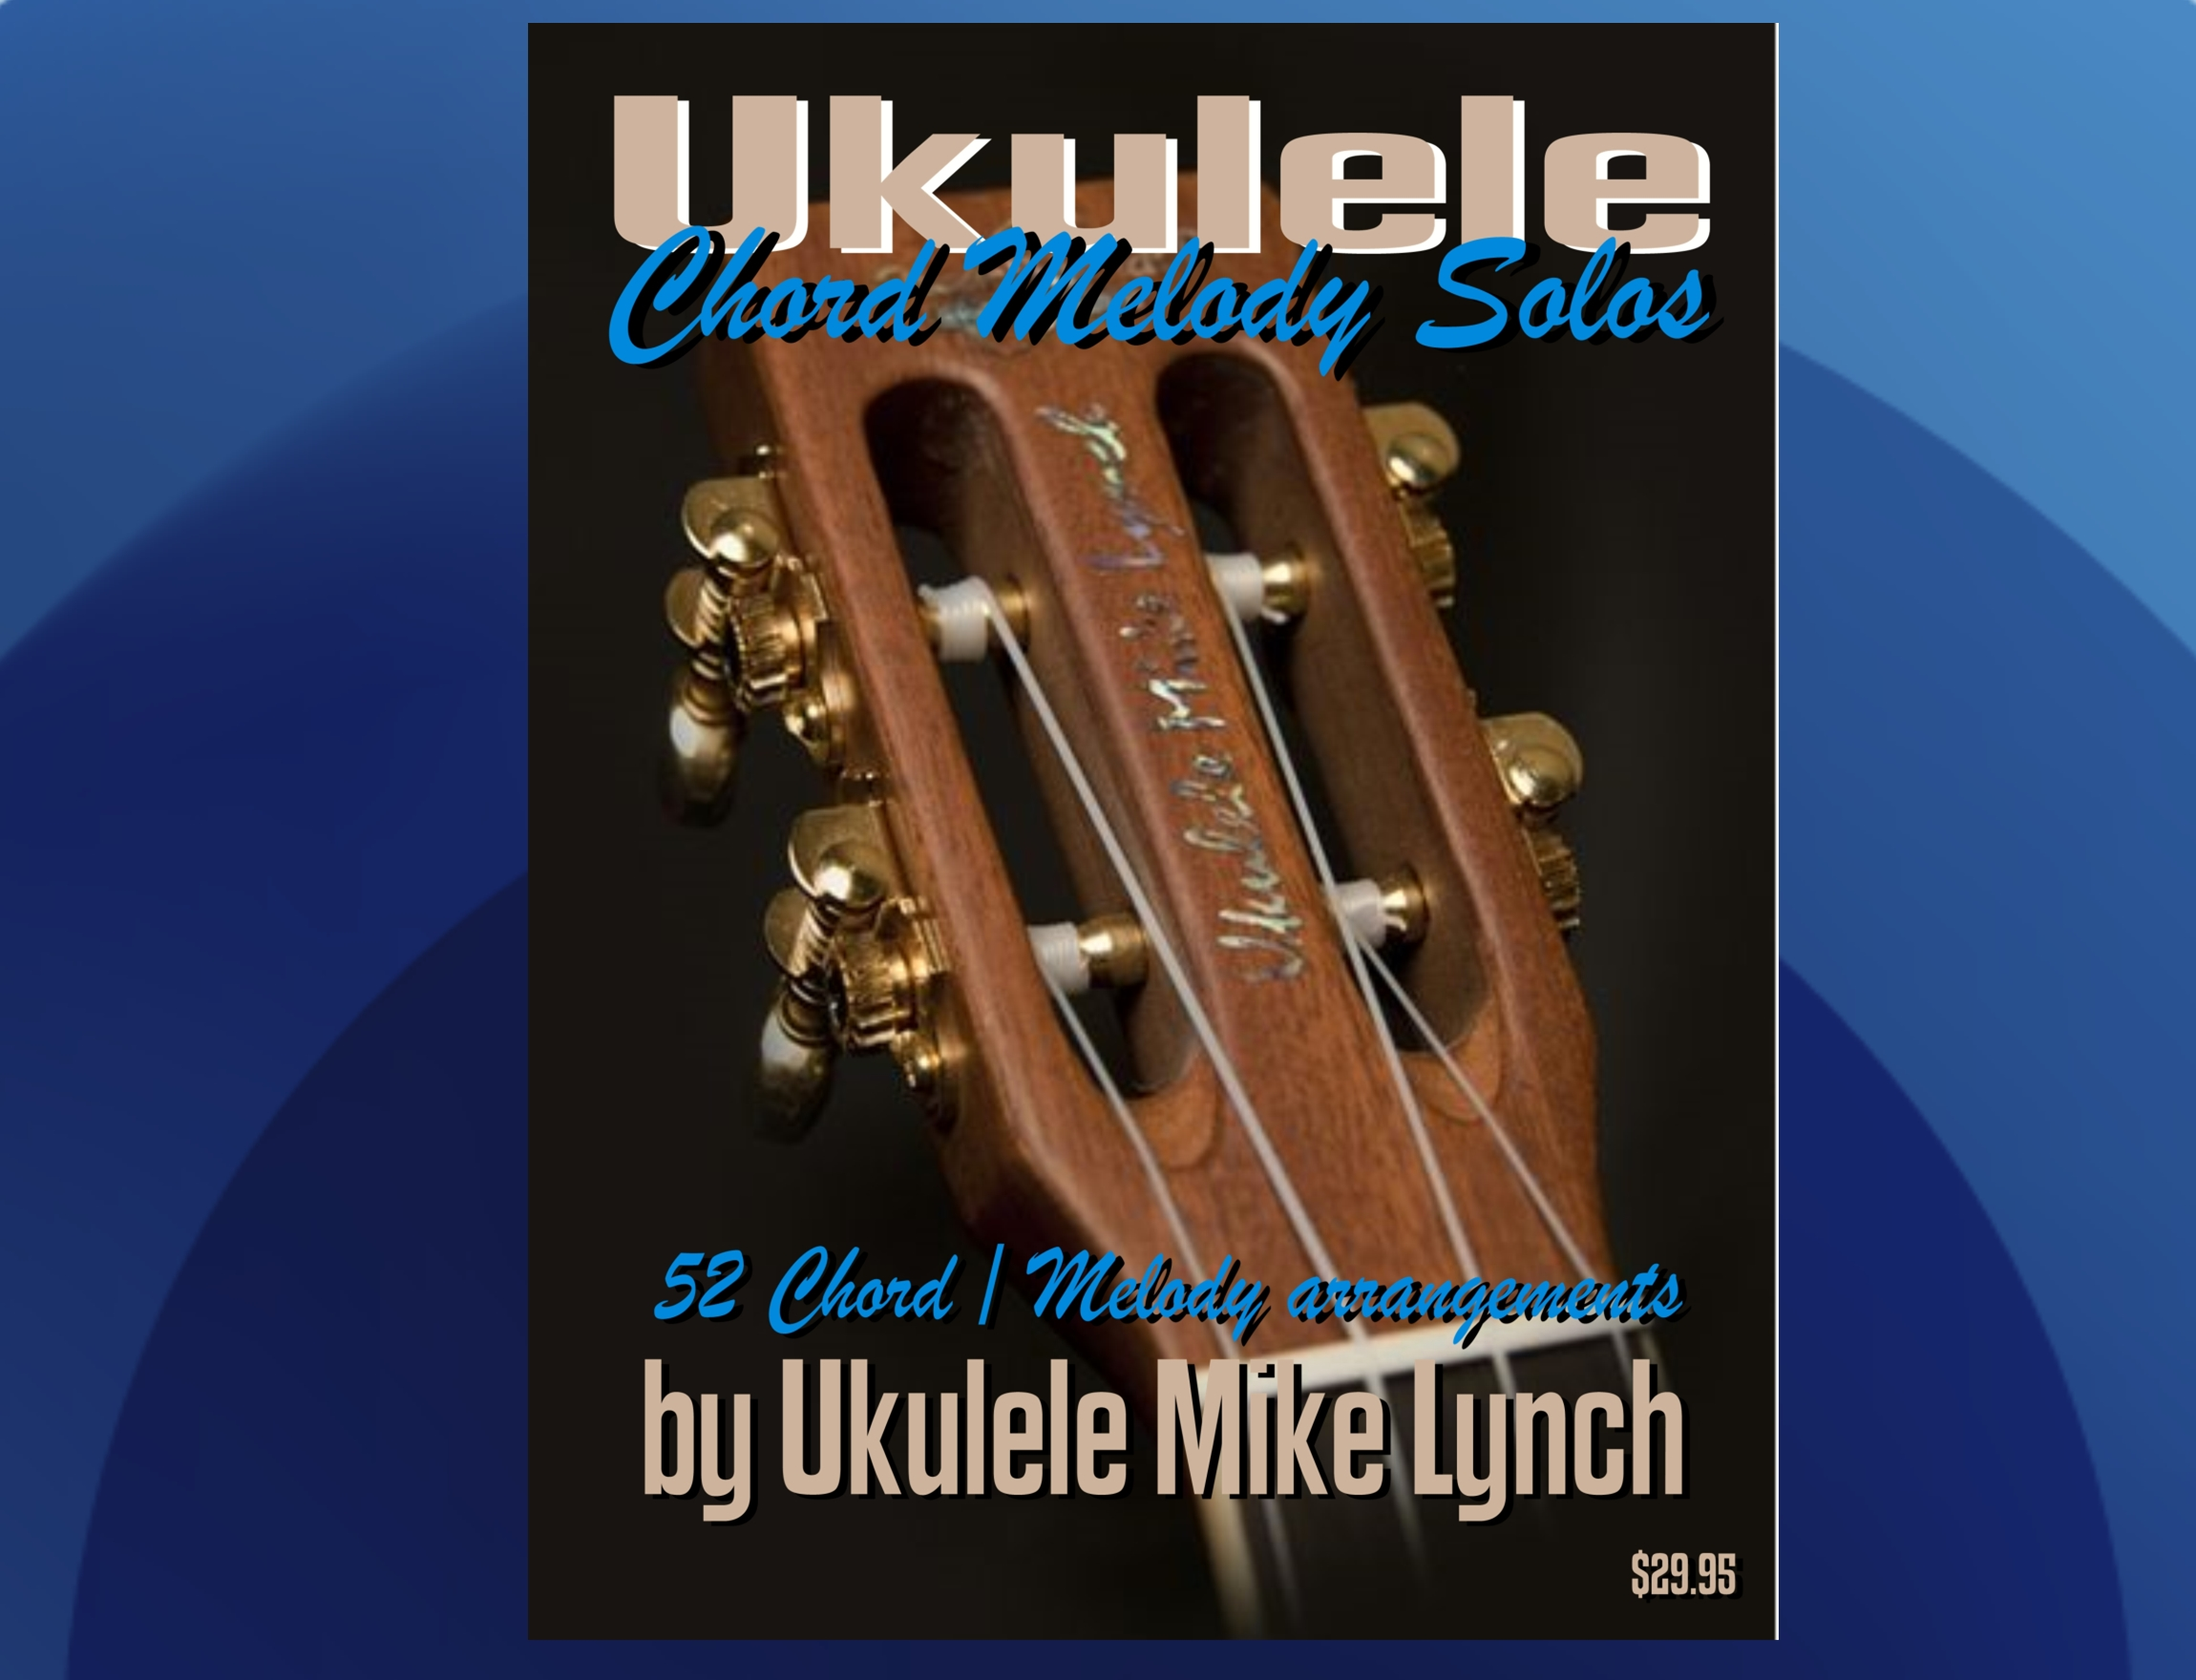 Your song ukulele chords